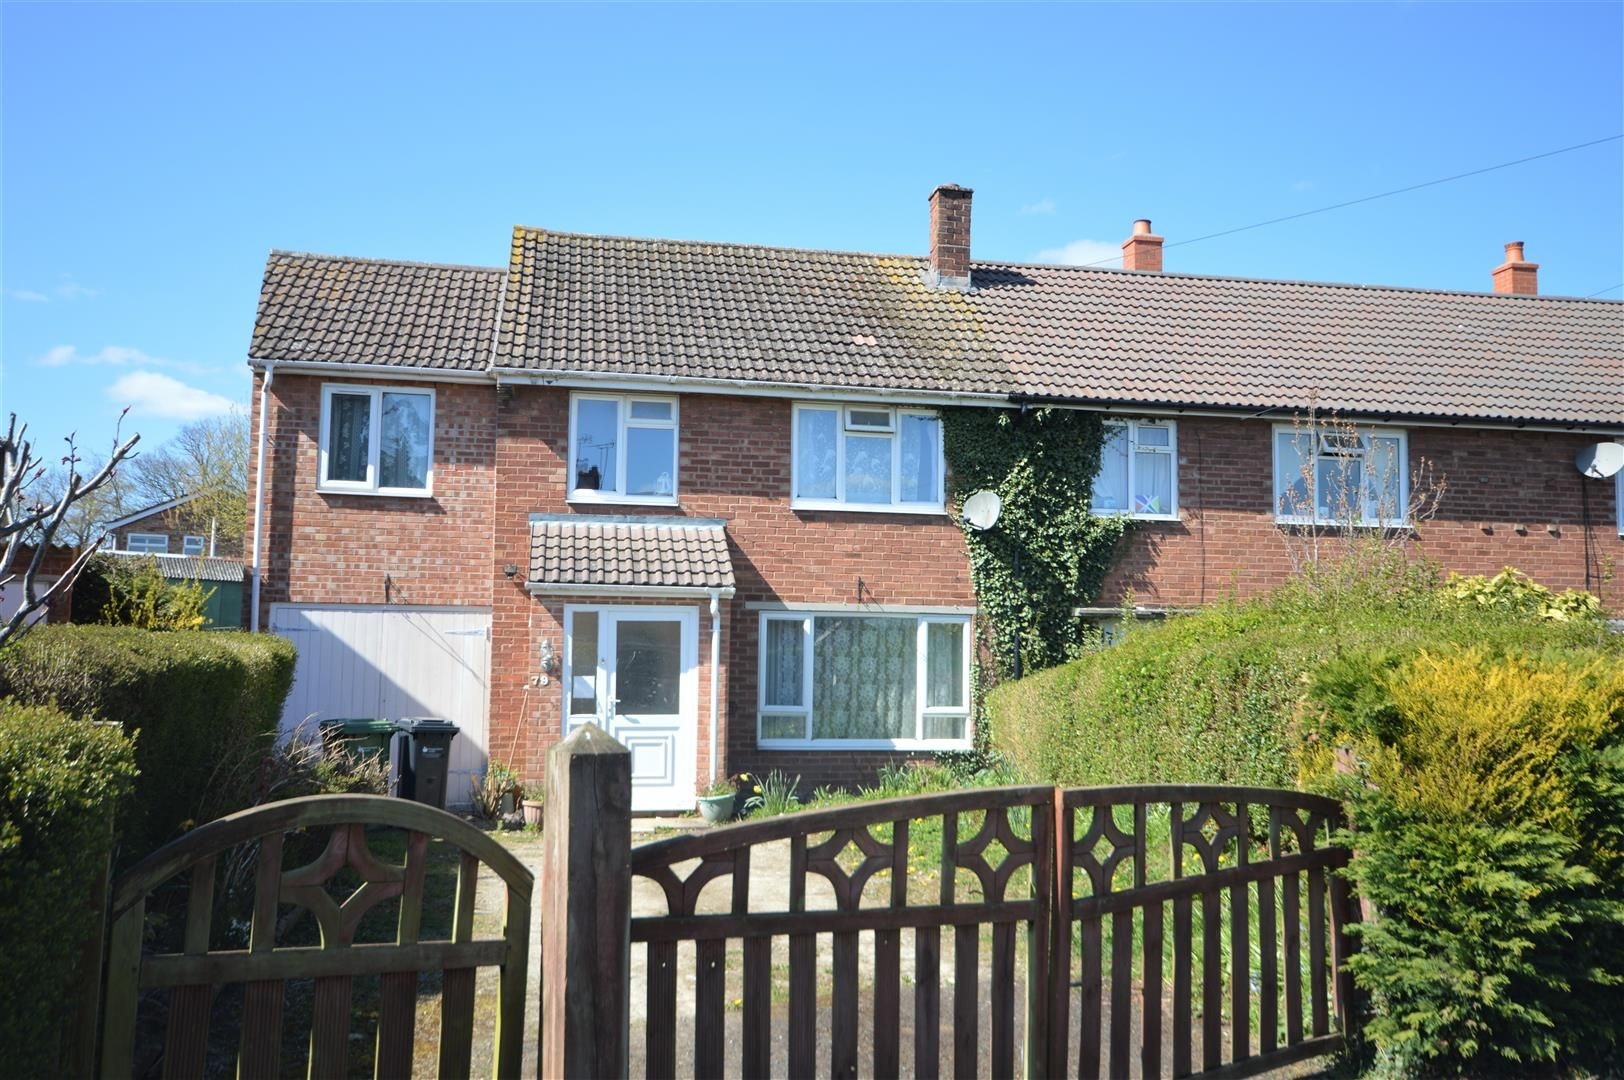 4 bed end of terrace for sale in Weobley, HR4